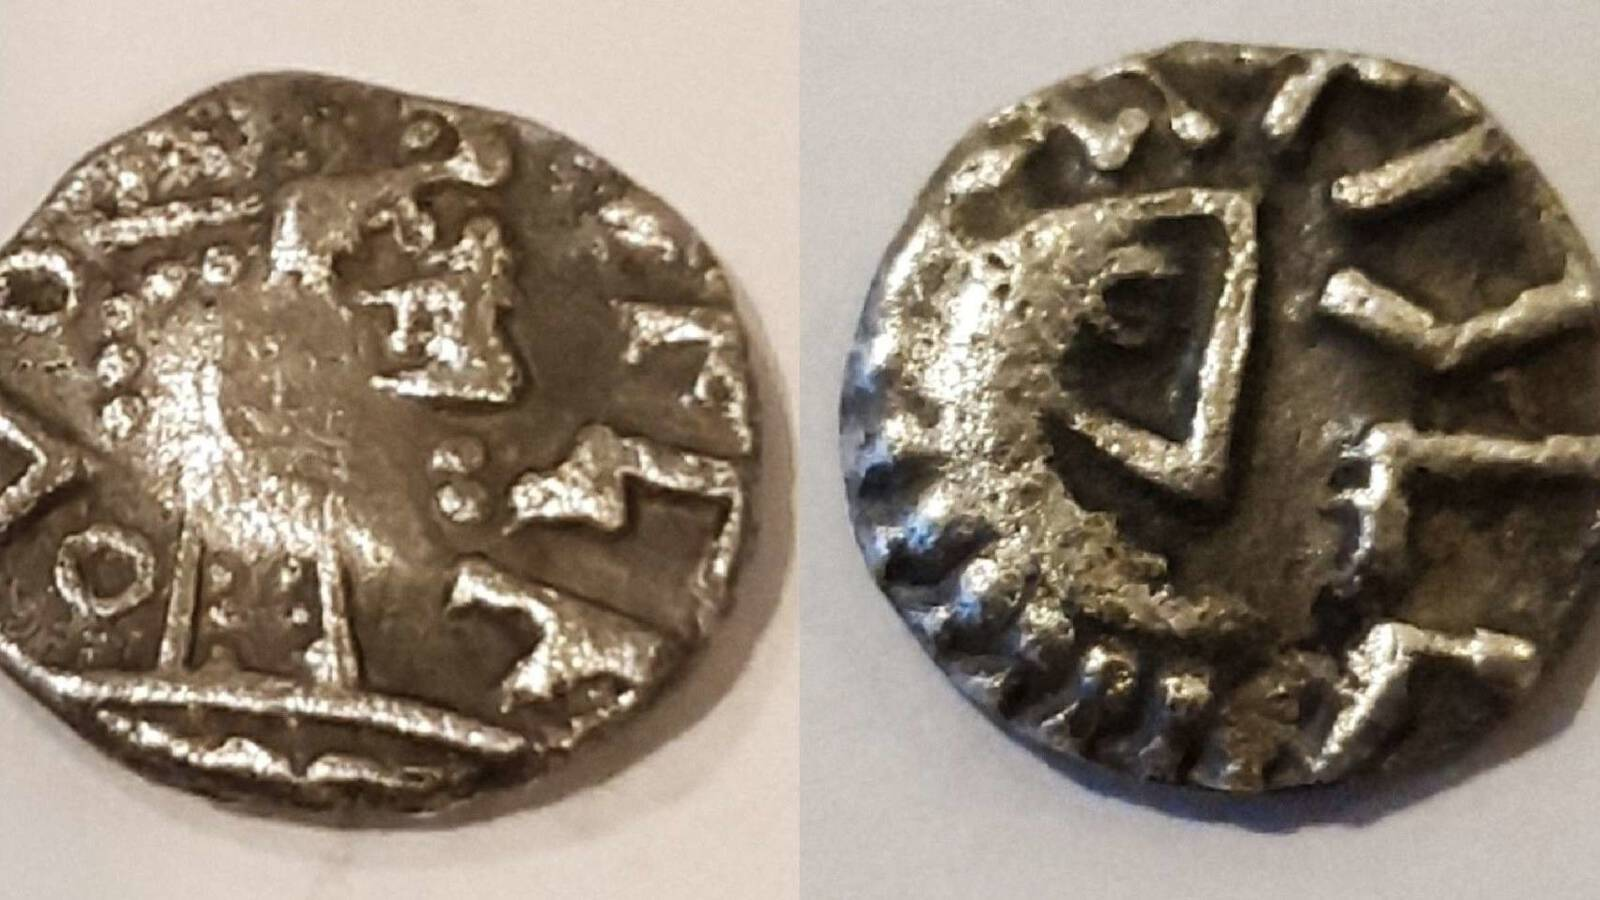 The newly discovered sceatta coin, photo by William Posthouwer